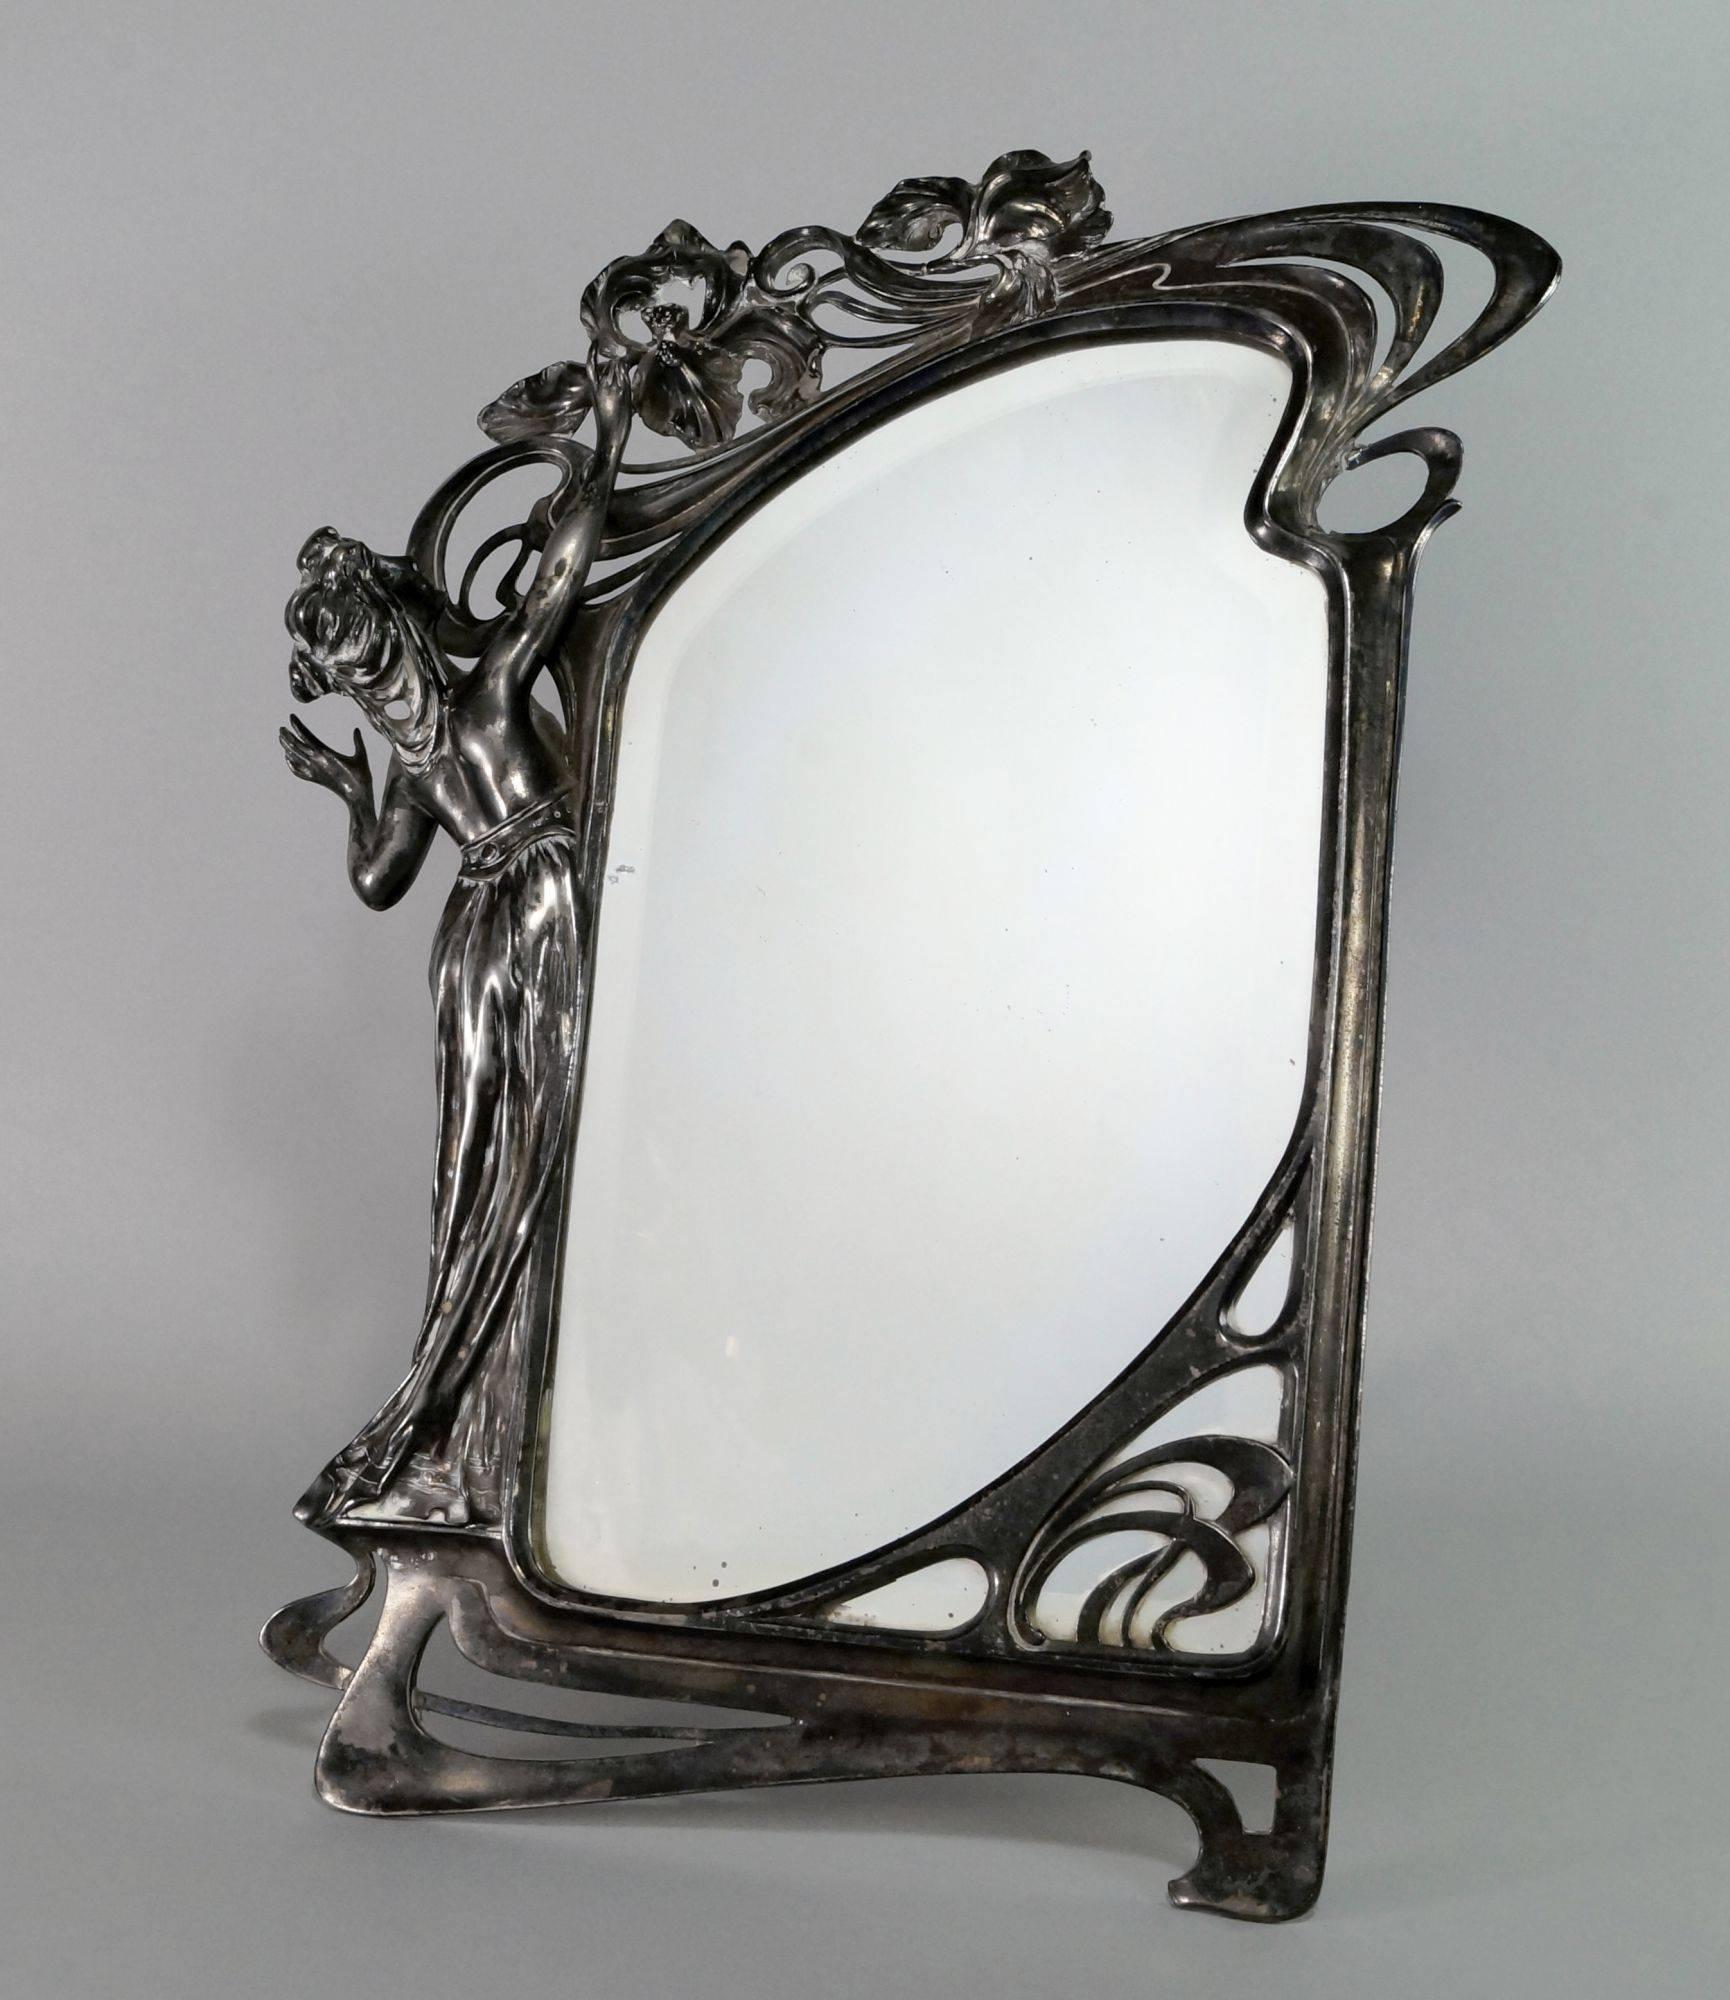 A Jugendstil Pewter Strut Mirror, Decorated With An Art Nouveau throughout Art Nouveau Mirrors (Image 4 of 25)